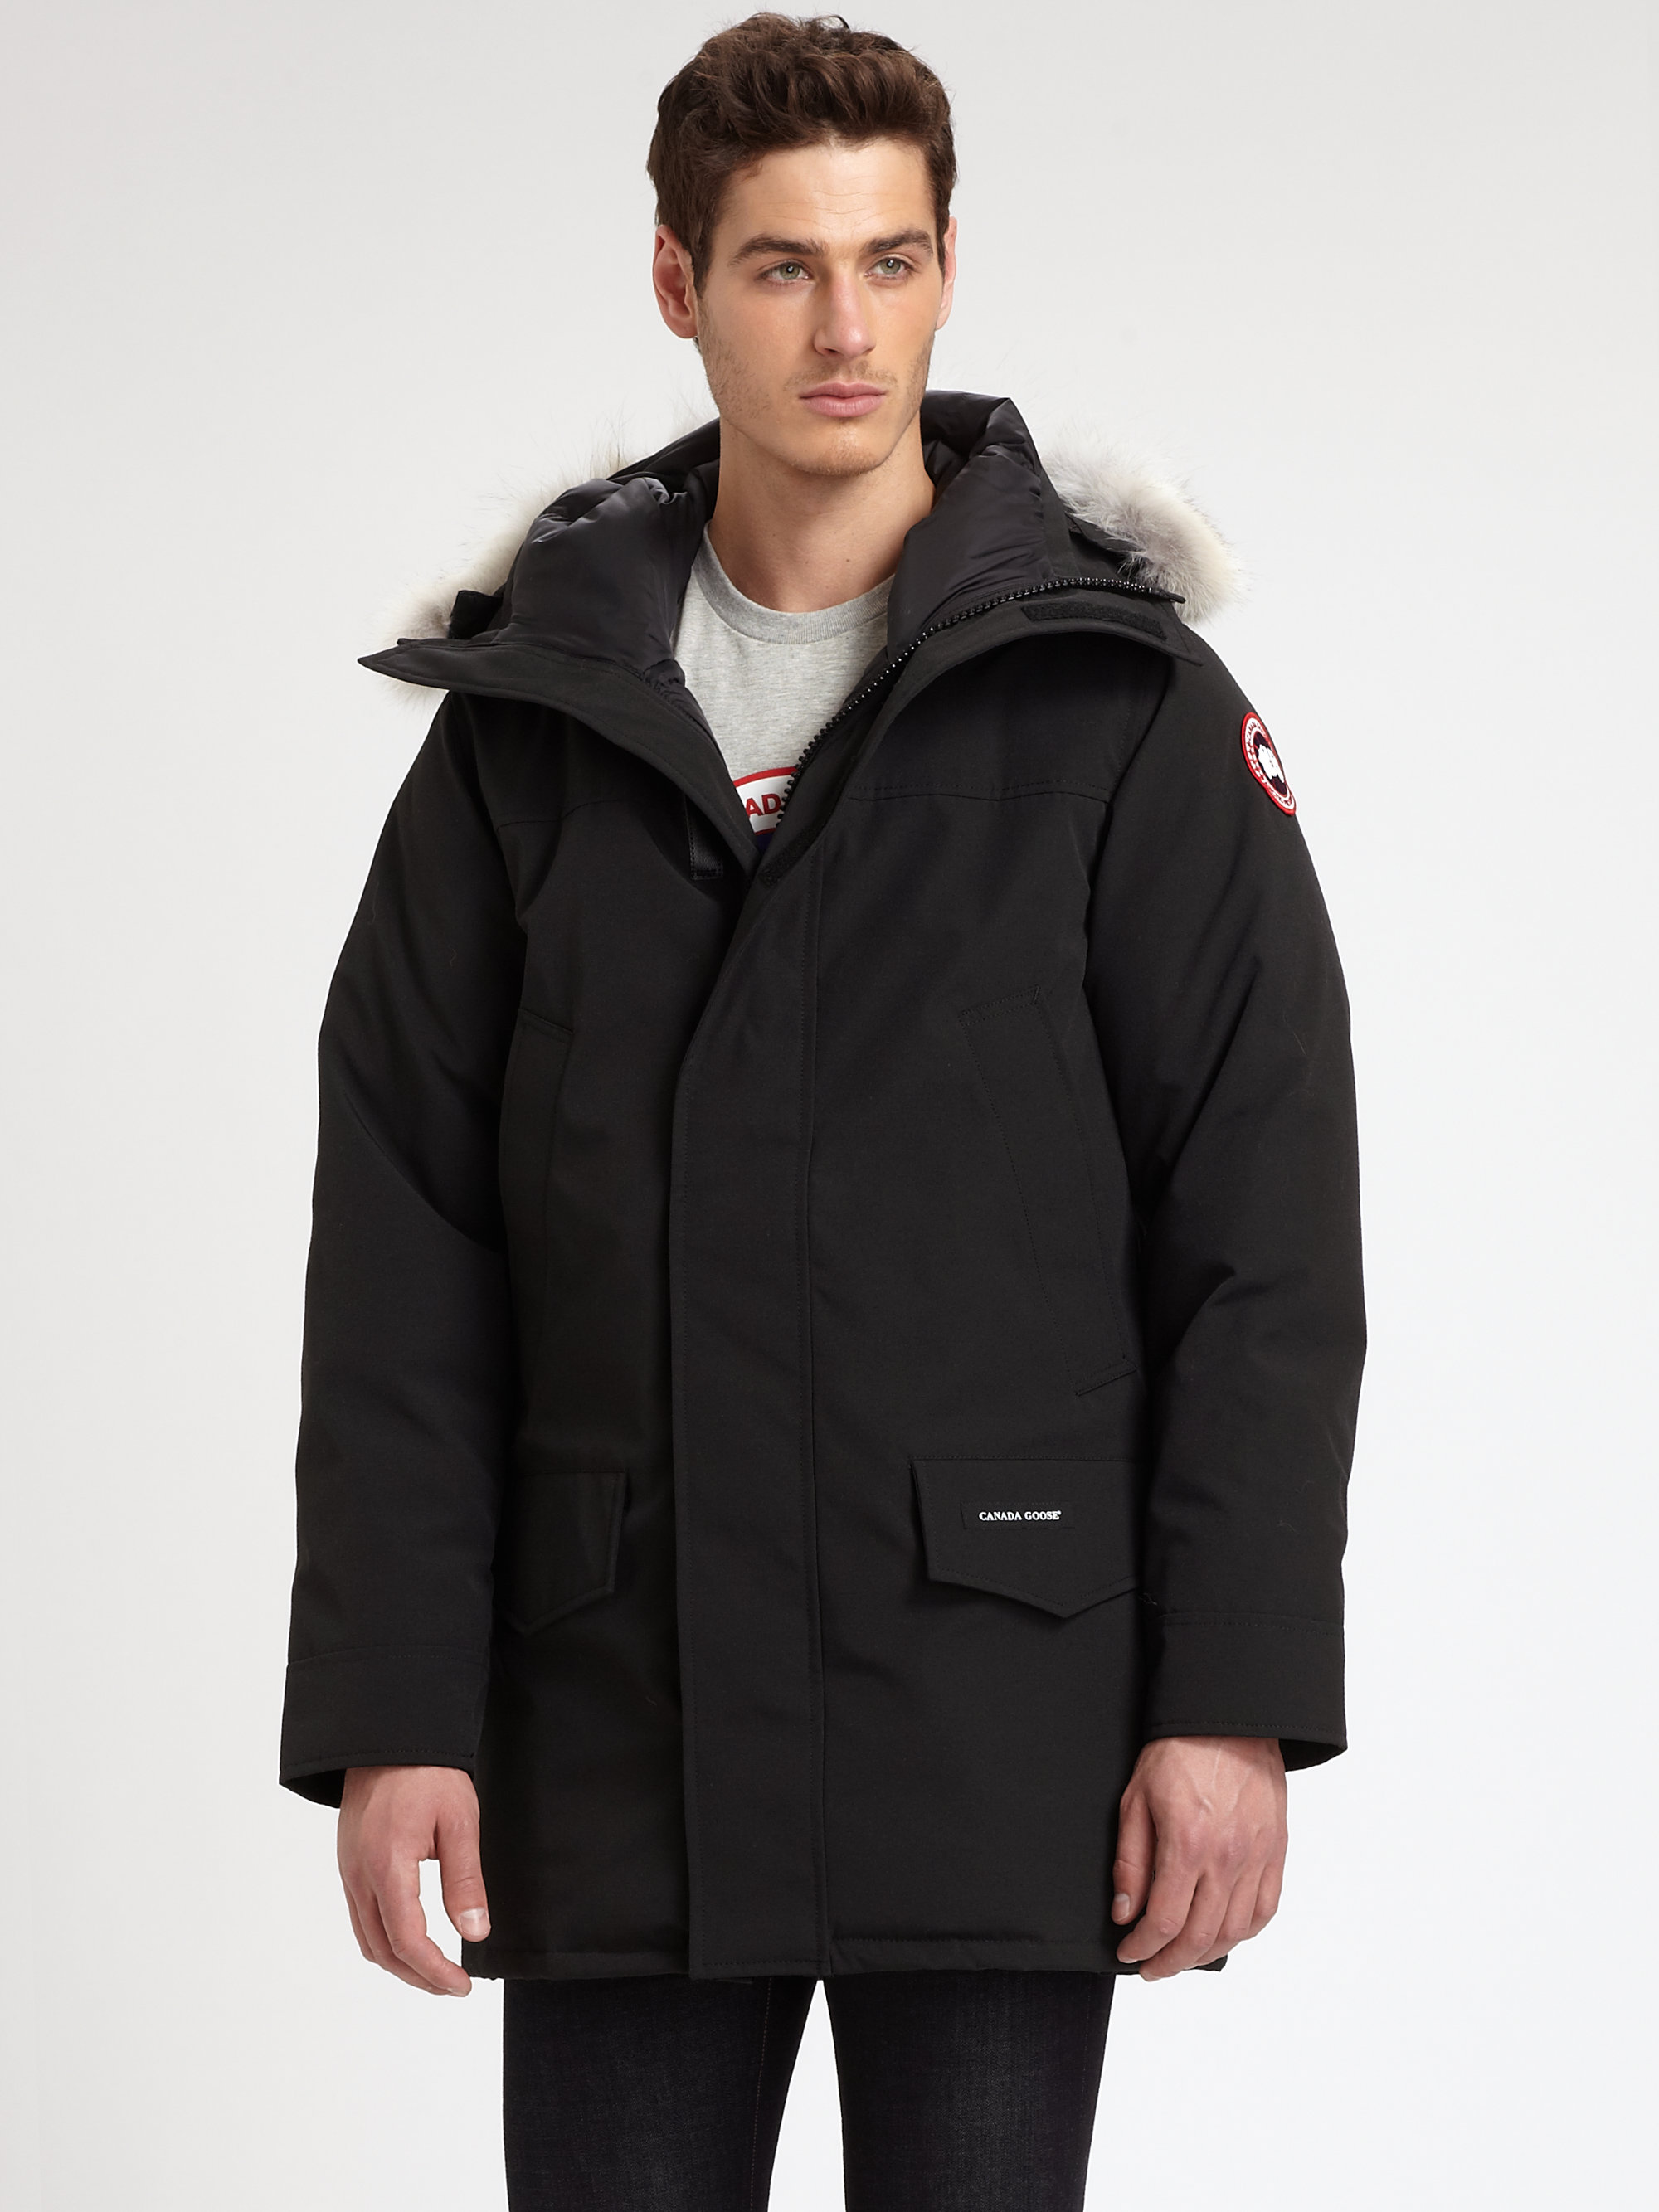 Canada Goose toronto outlet cheap - Canada goose Langford Parka in Black for Men | Lyst